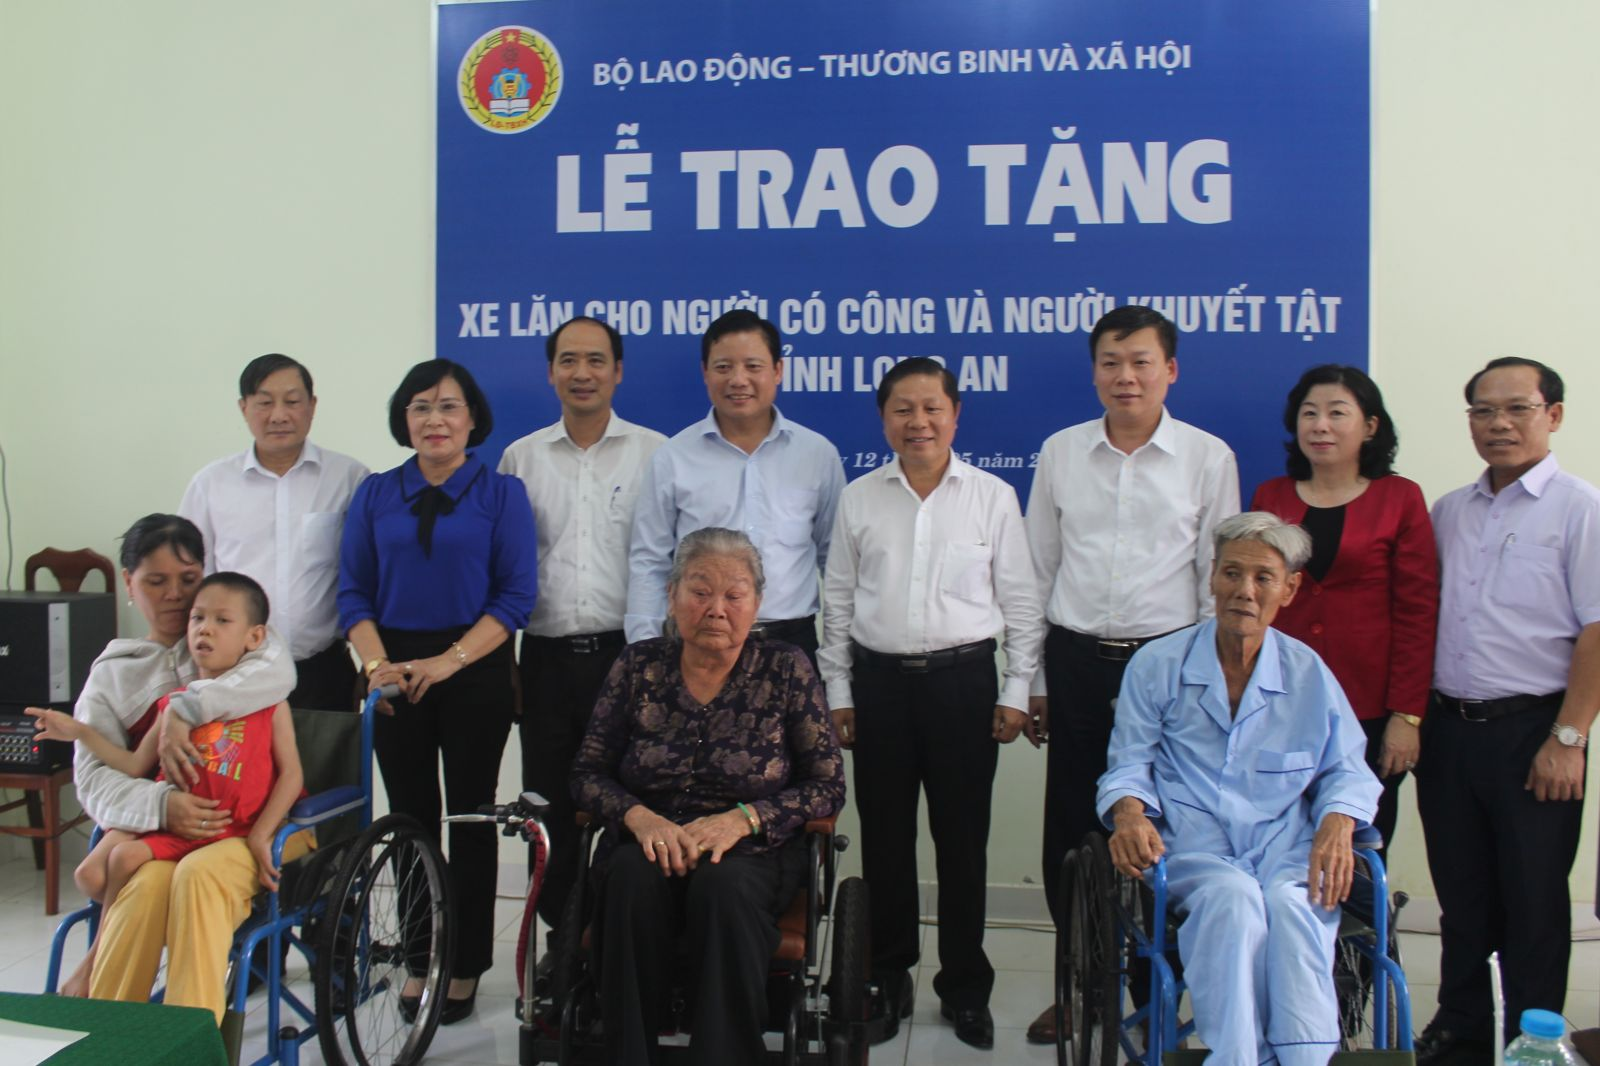 The delegation presents wheelchairs to disabled people and people with meritorious services in Long An